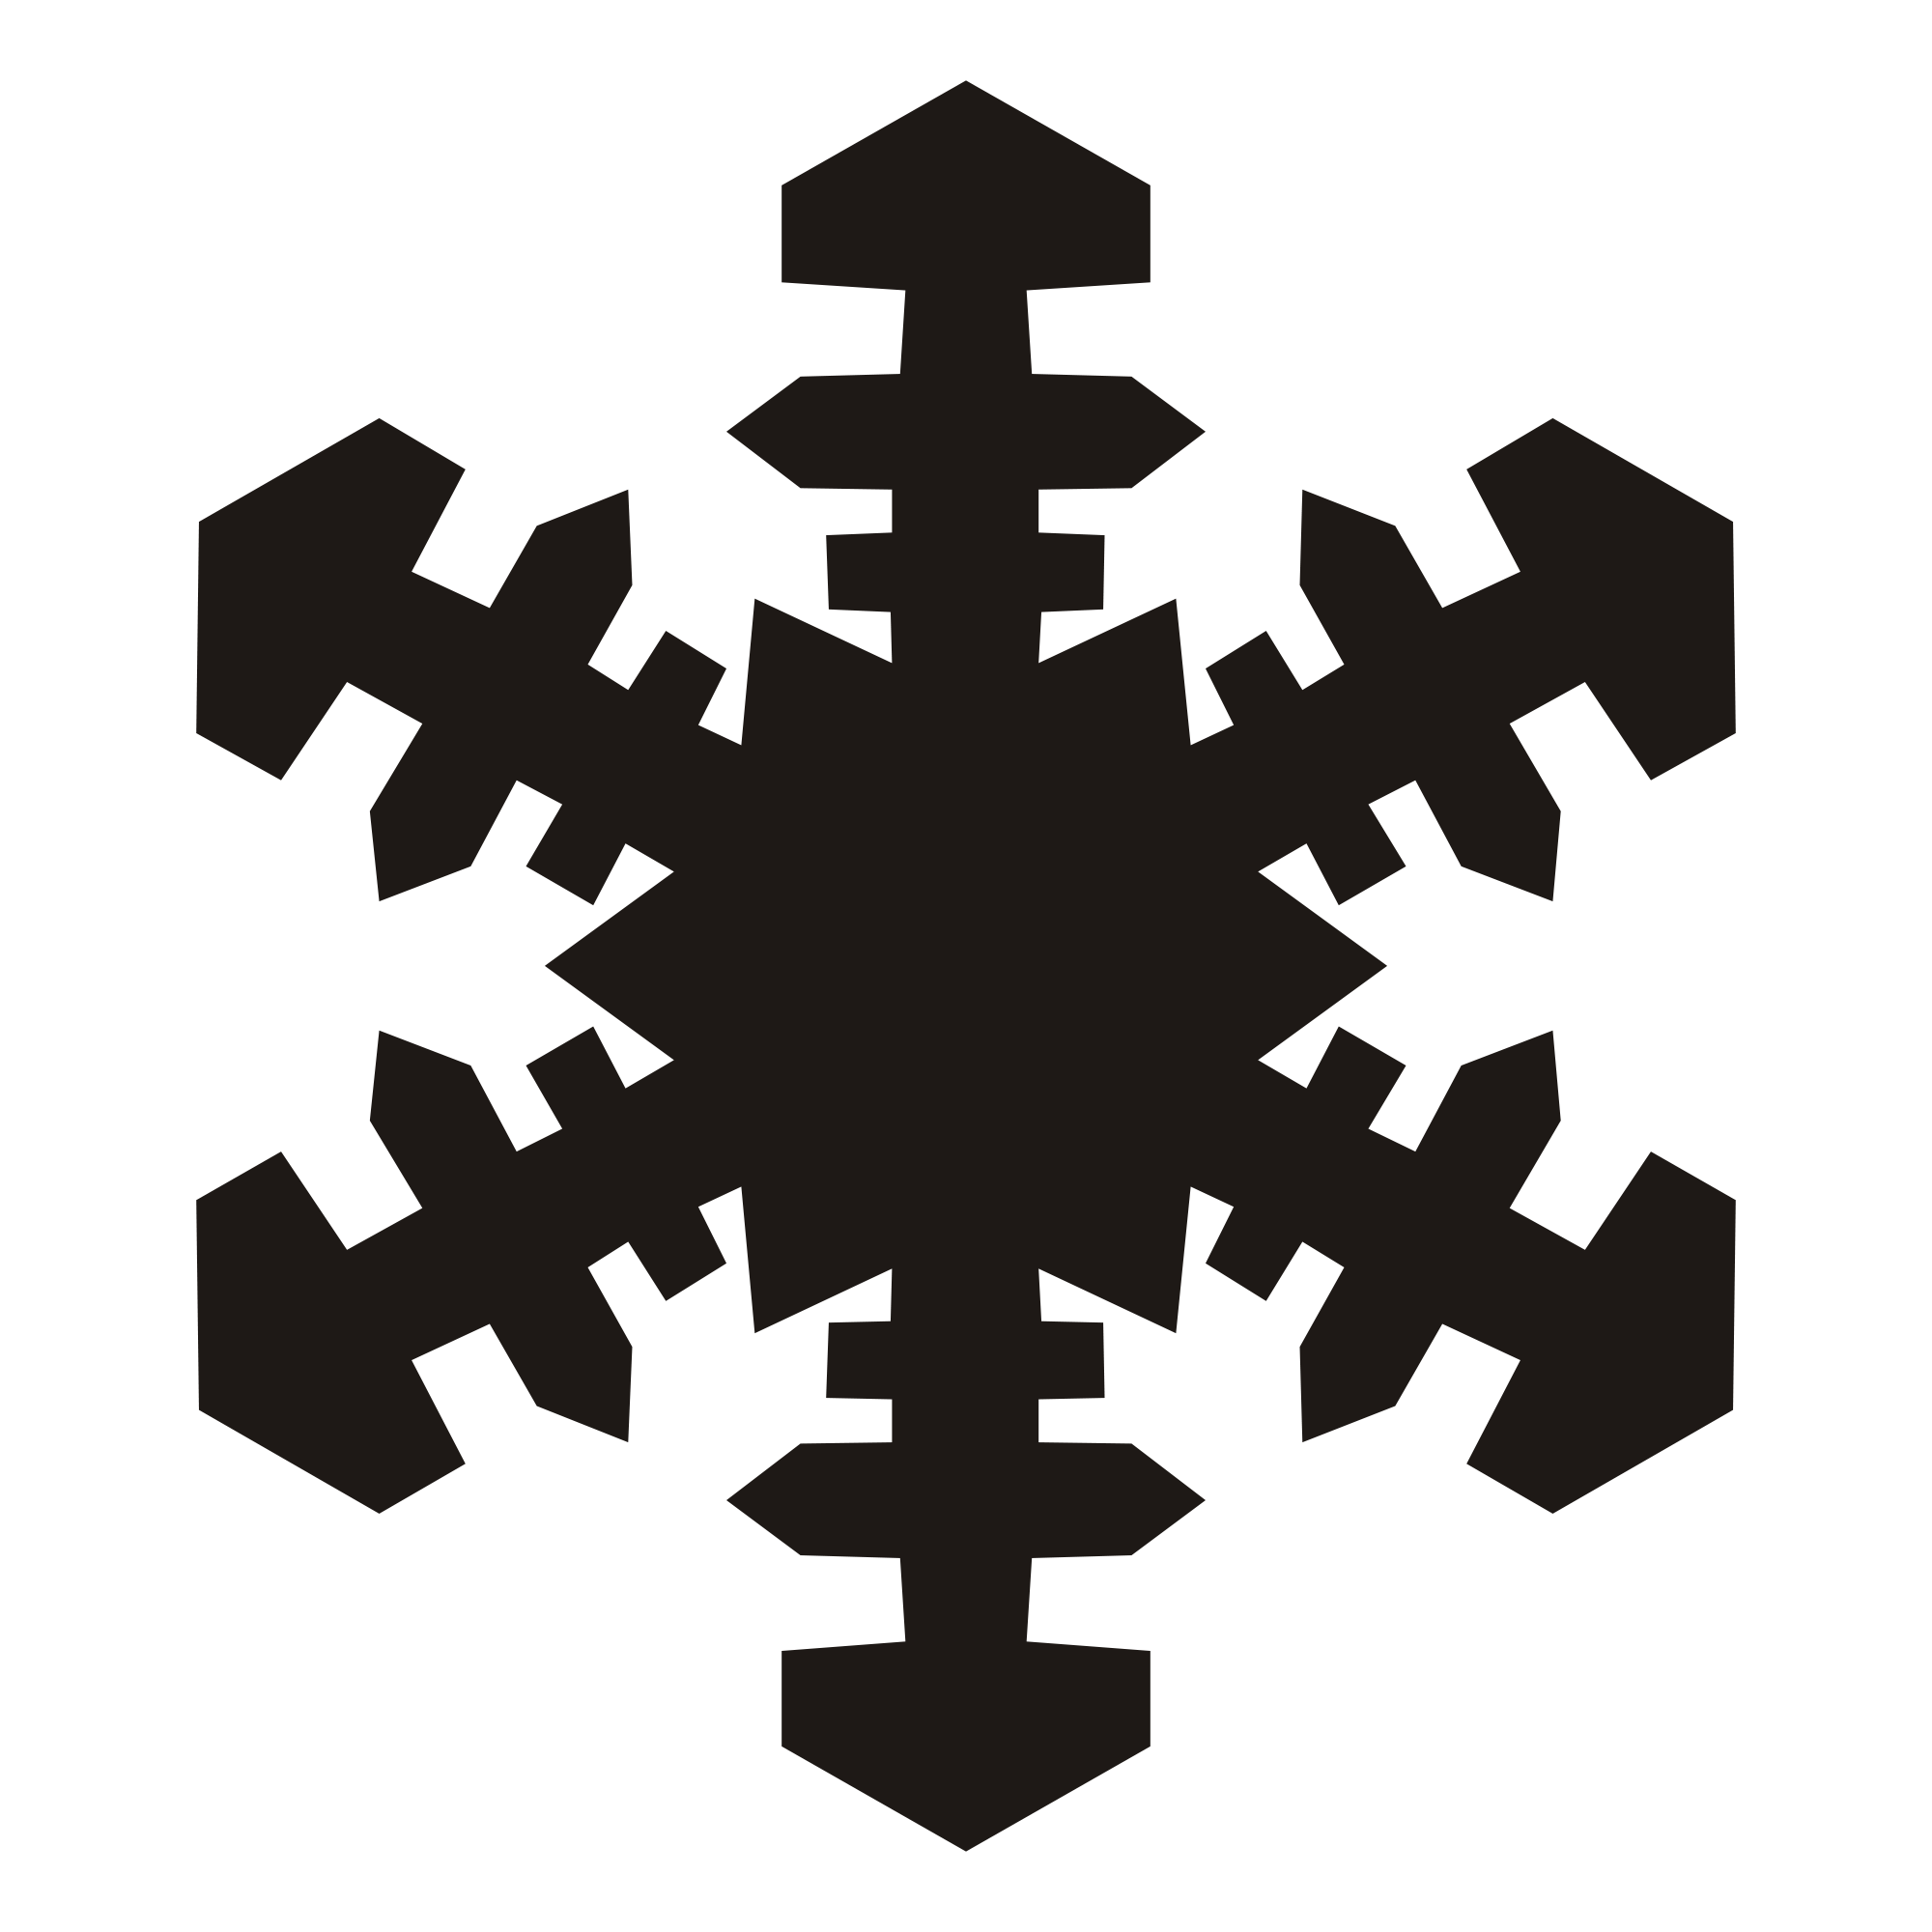 2000x2000 Collection Of Free Snowflake Vector Public Domain. Download On Ubisafe